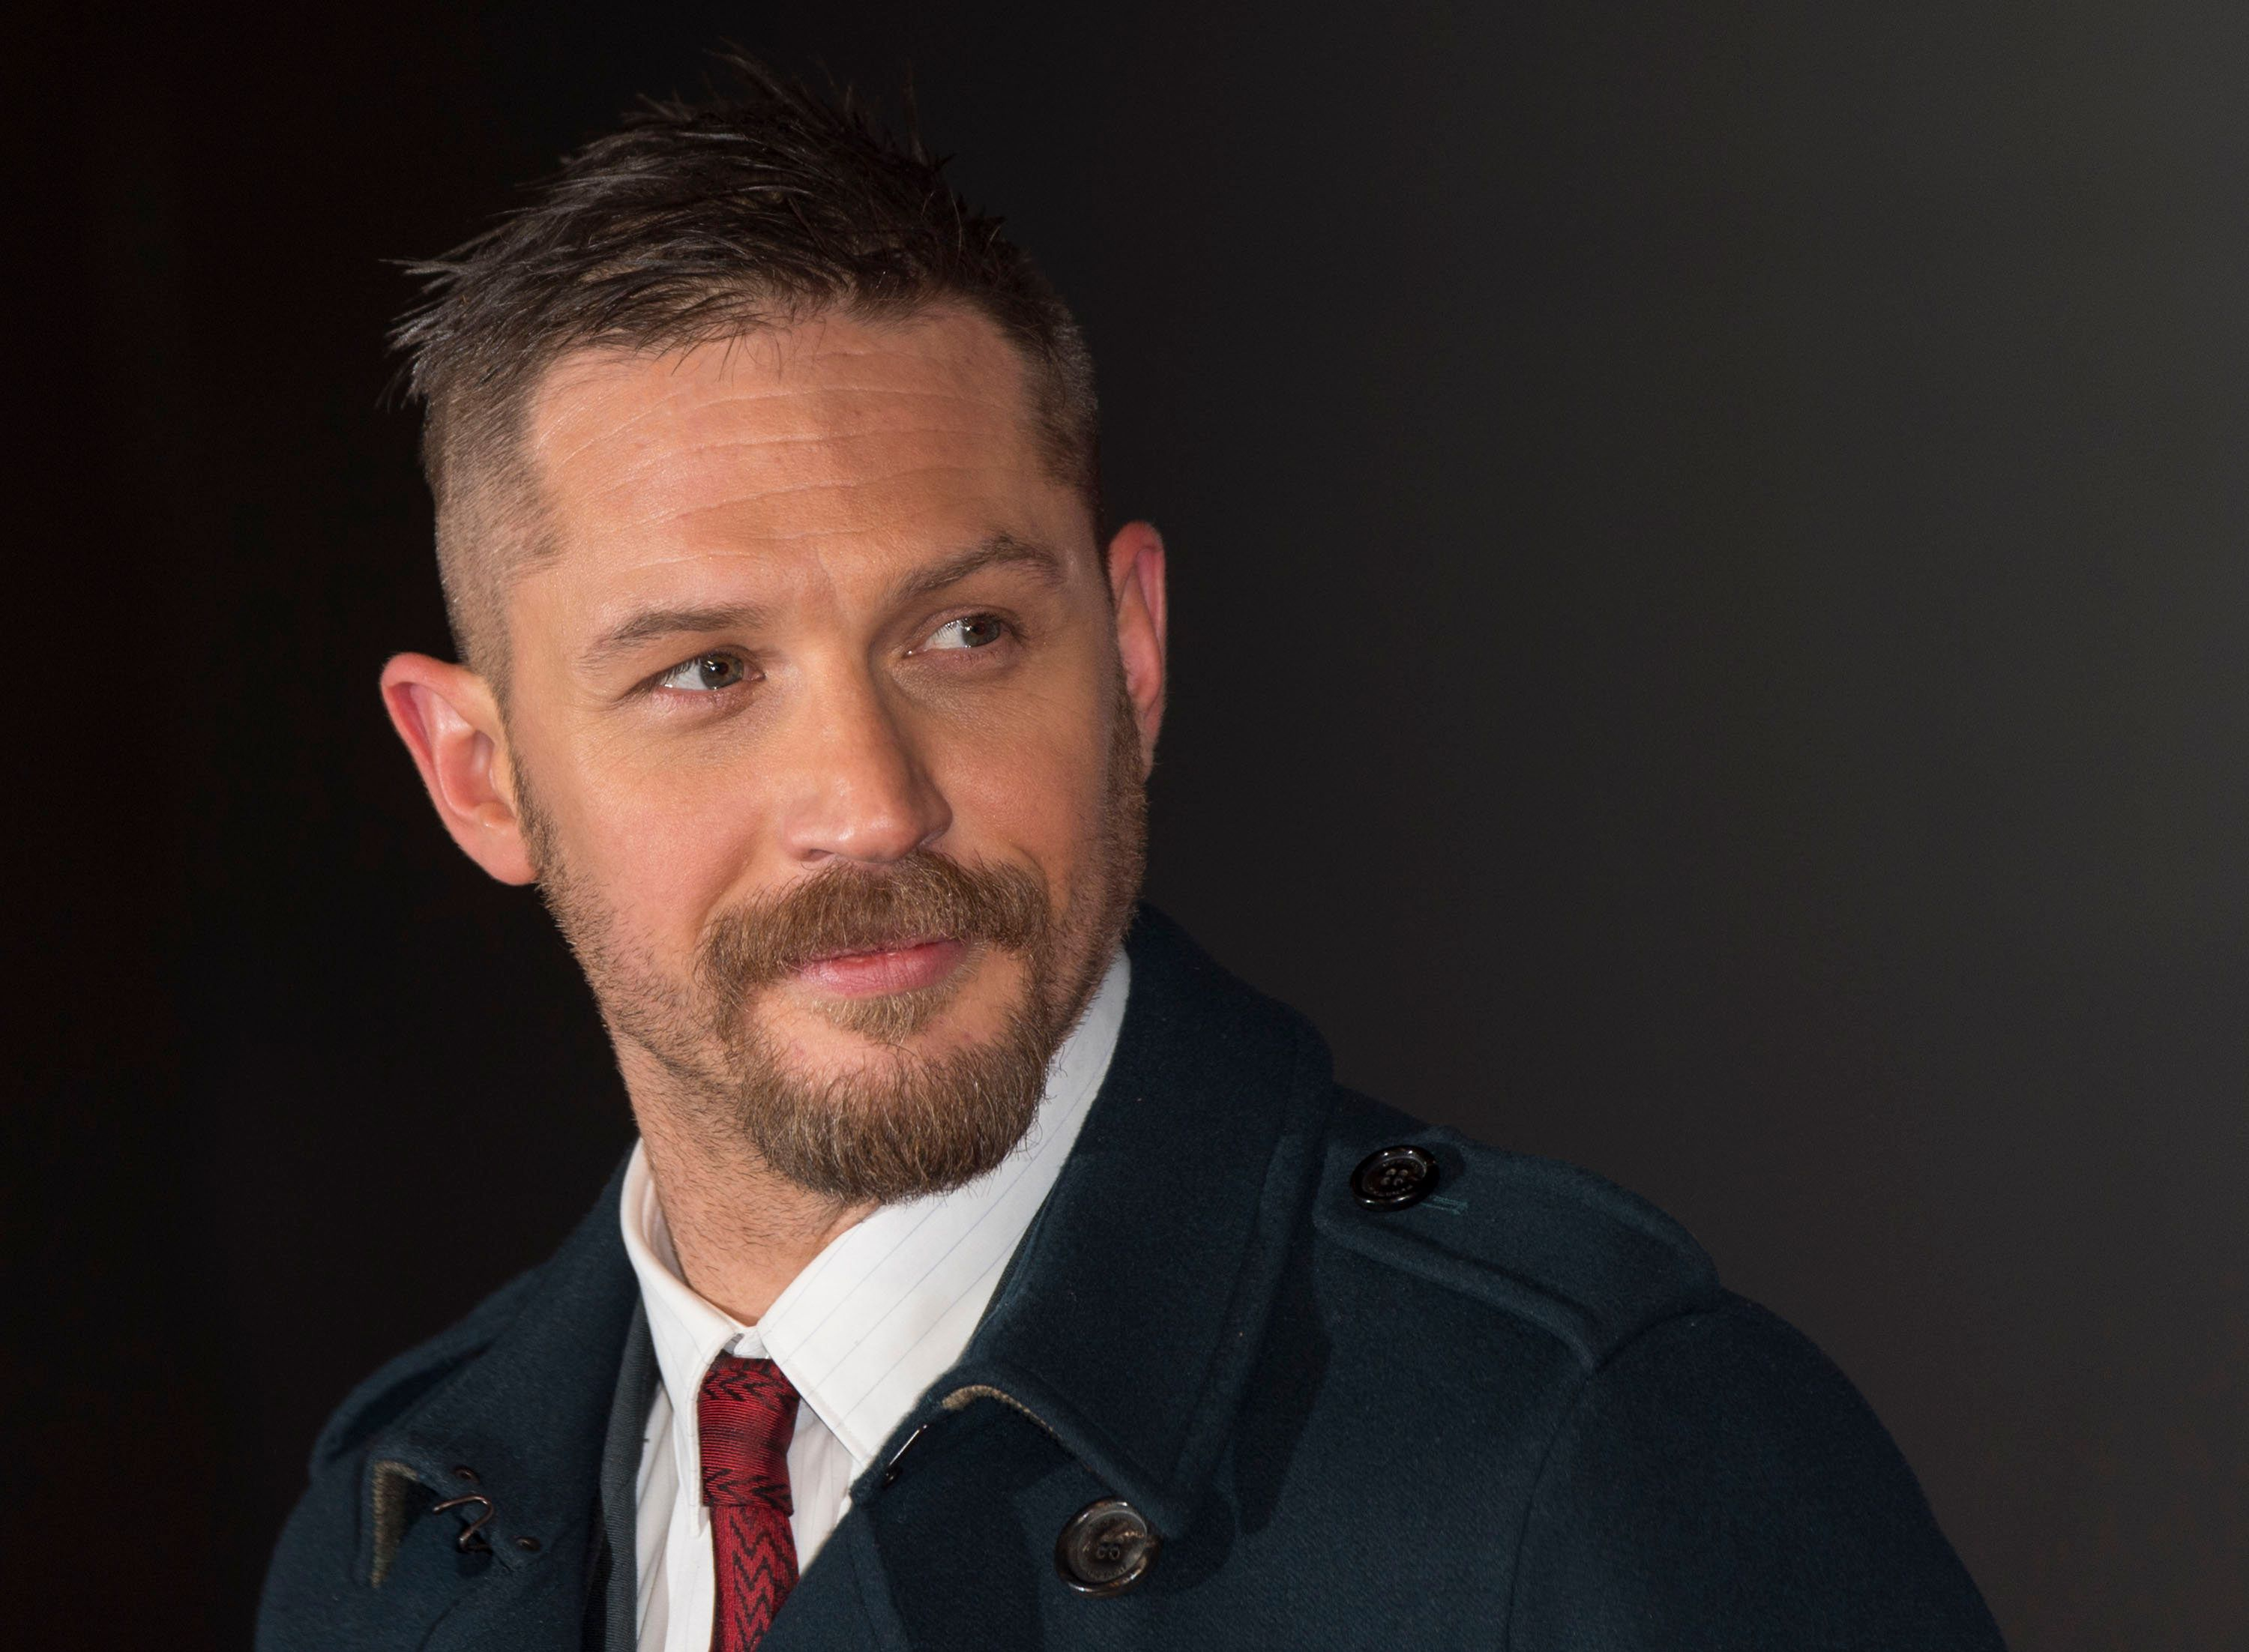 LONDON, ENGLAND - JANUARY 14:  Tom Hardy attends UK Premiere of 'The Revenant' at Empire Leicester Square on January 14, 2016 in London, England.  (Photo by Mark Cuthbert/UK Press via Getty Images)